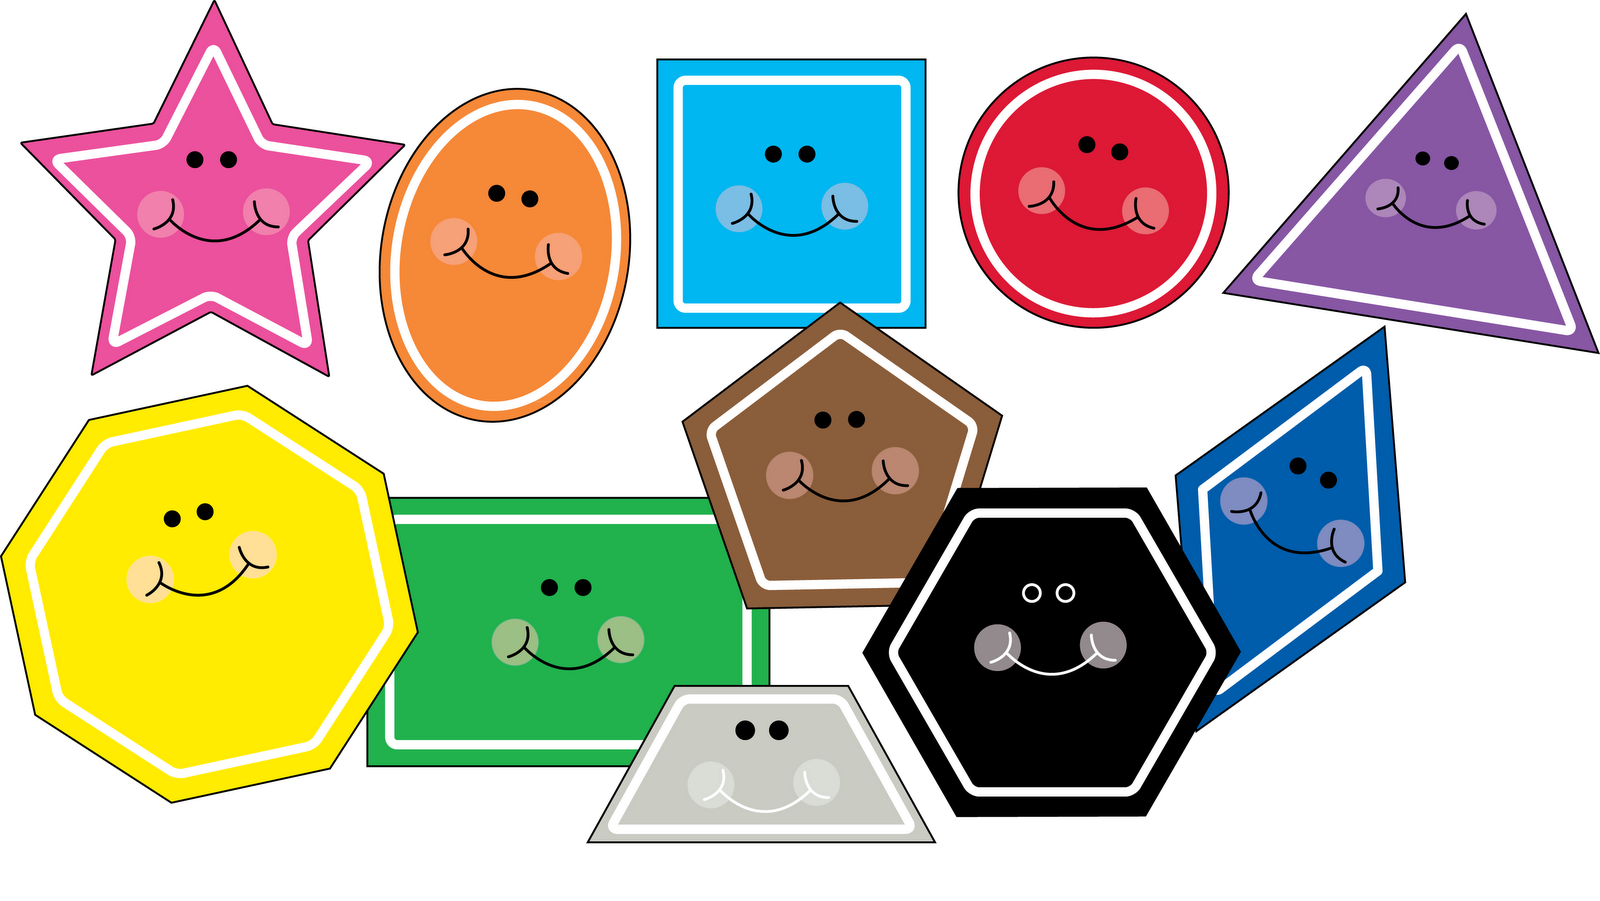 Cute shapes clipart clip art library download Cute shapes clipart clipart images gallery for free download ... clip art library download